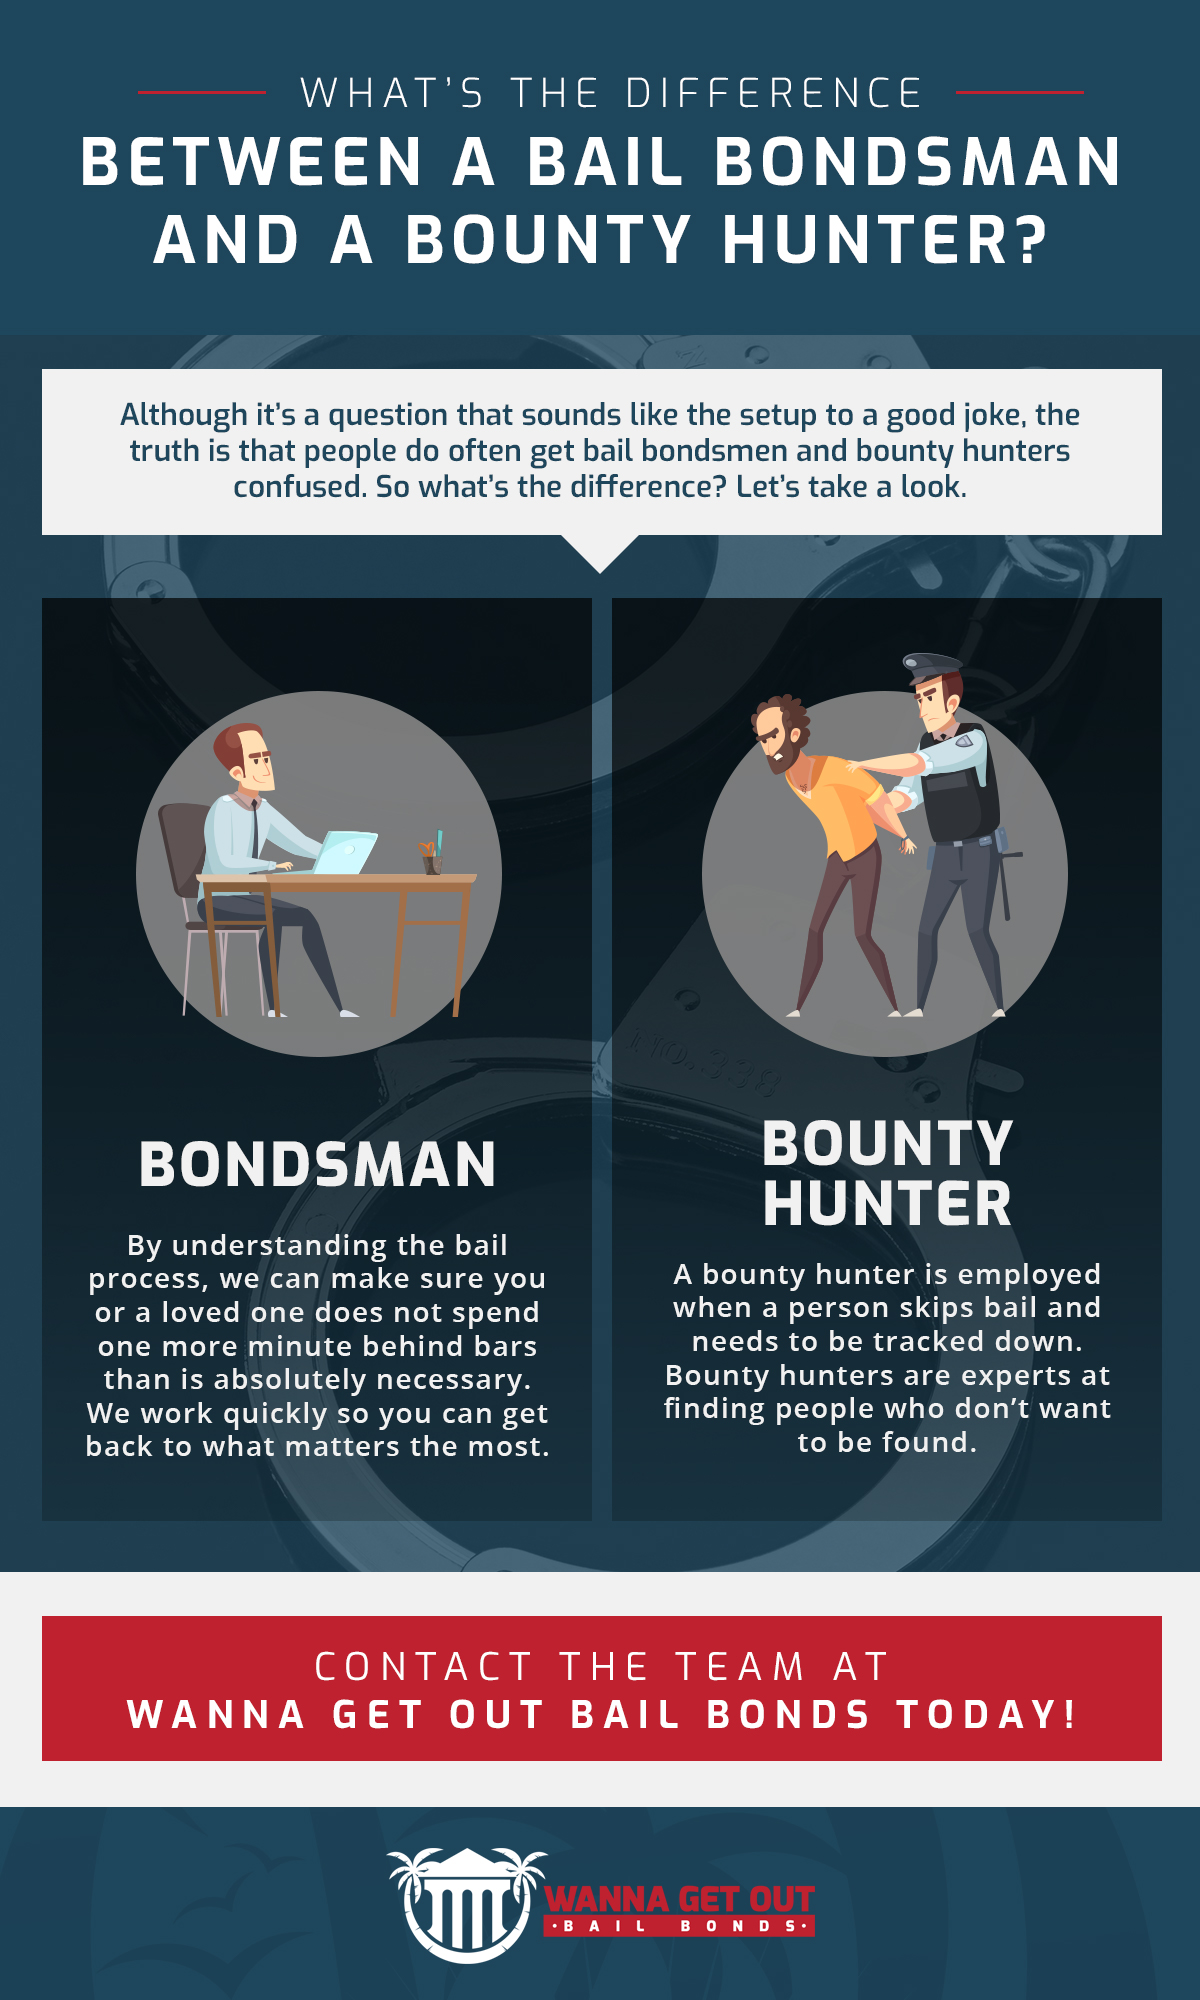 What's the Difference Between a Bail Bondsman and a Bounty Hunter